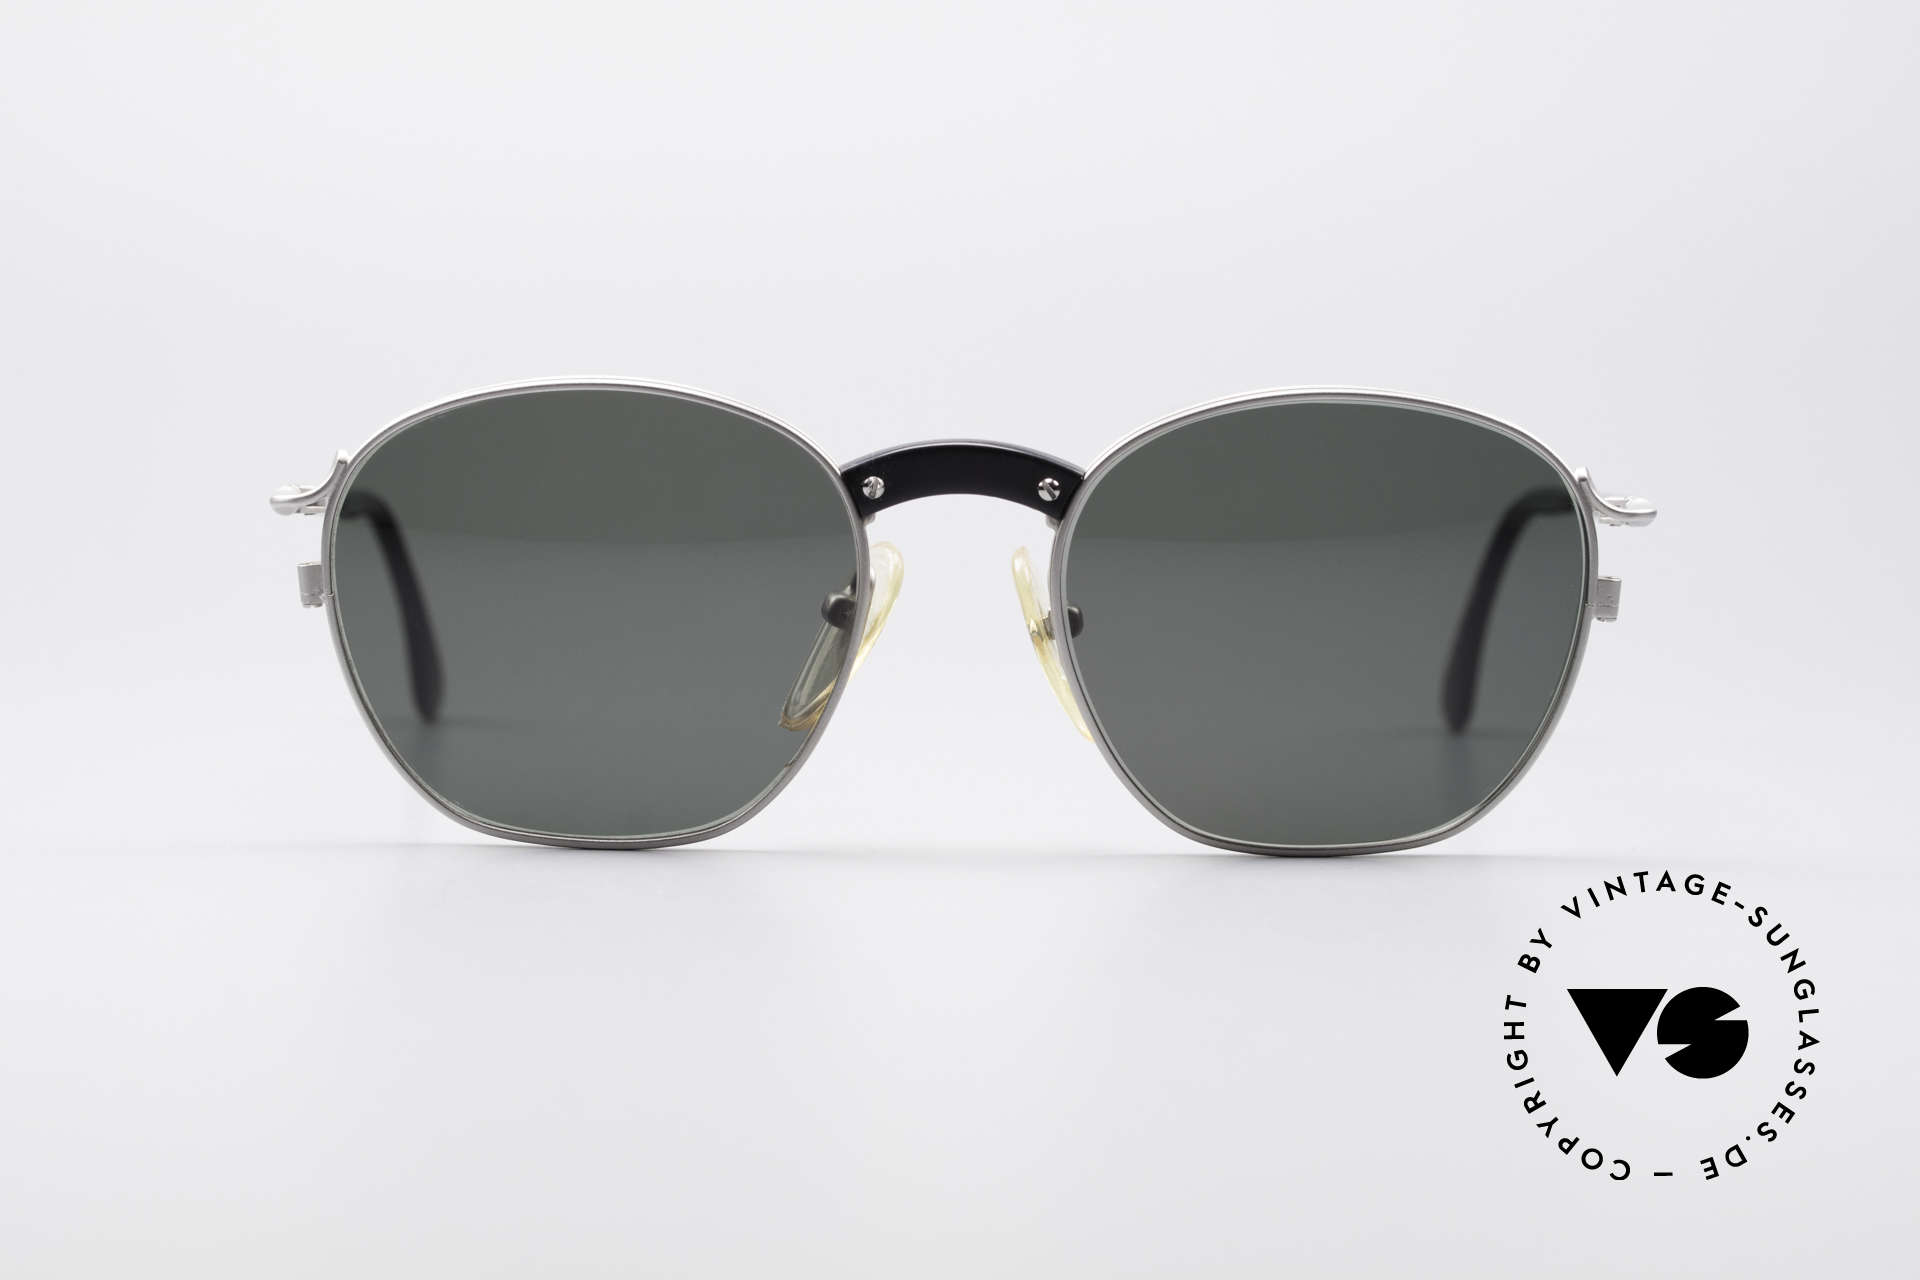 Jean Paul Gaultier 55-1271 Rare Vintage Sunglasses, lightweight (titan) frame and very pleasant to wear, Made for Men and Women